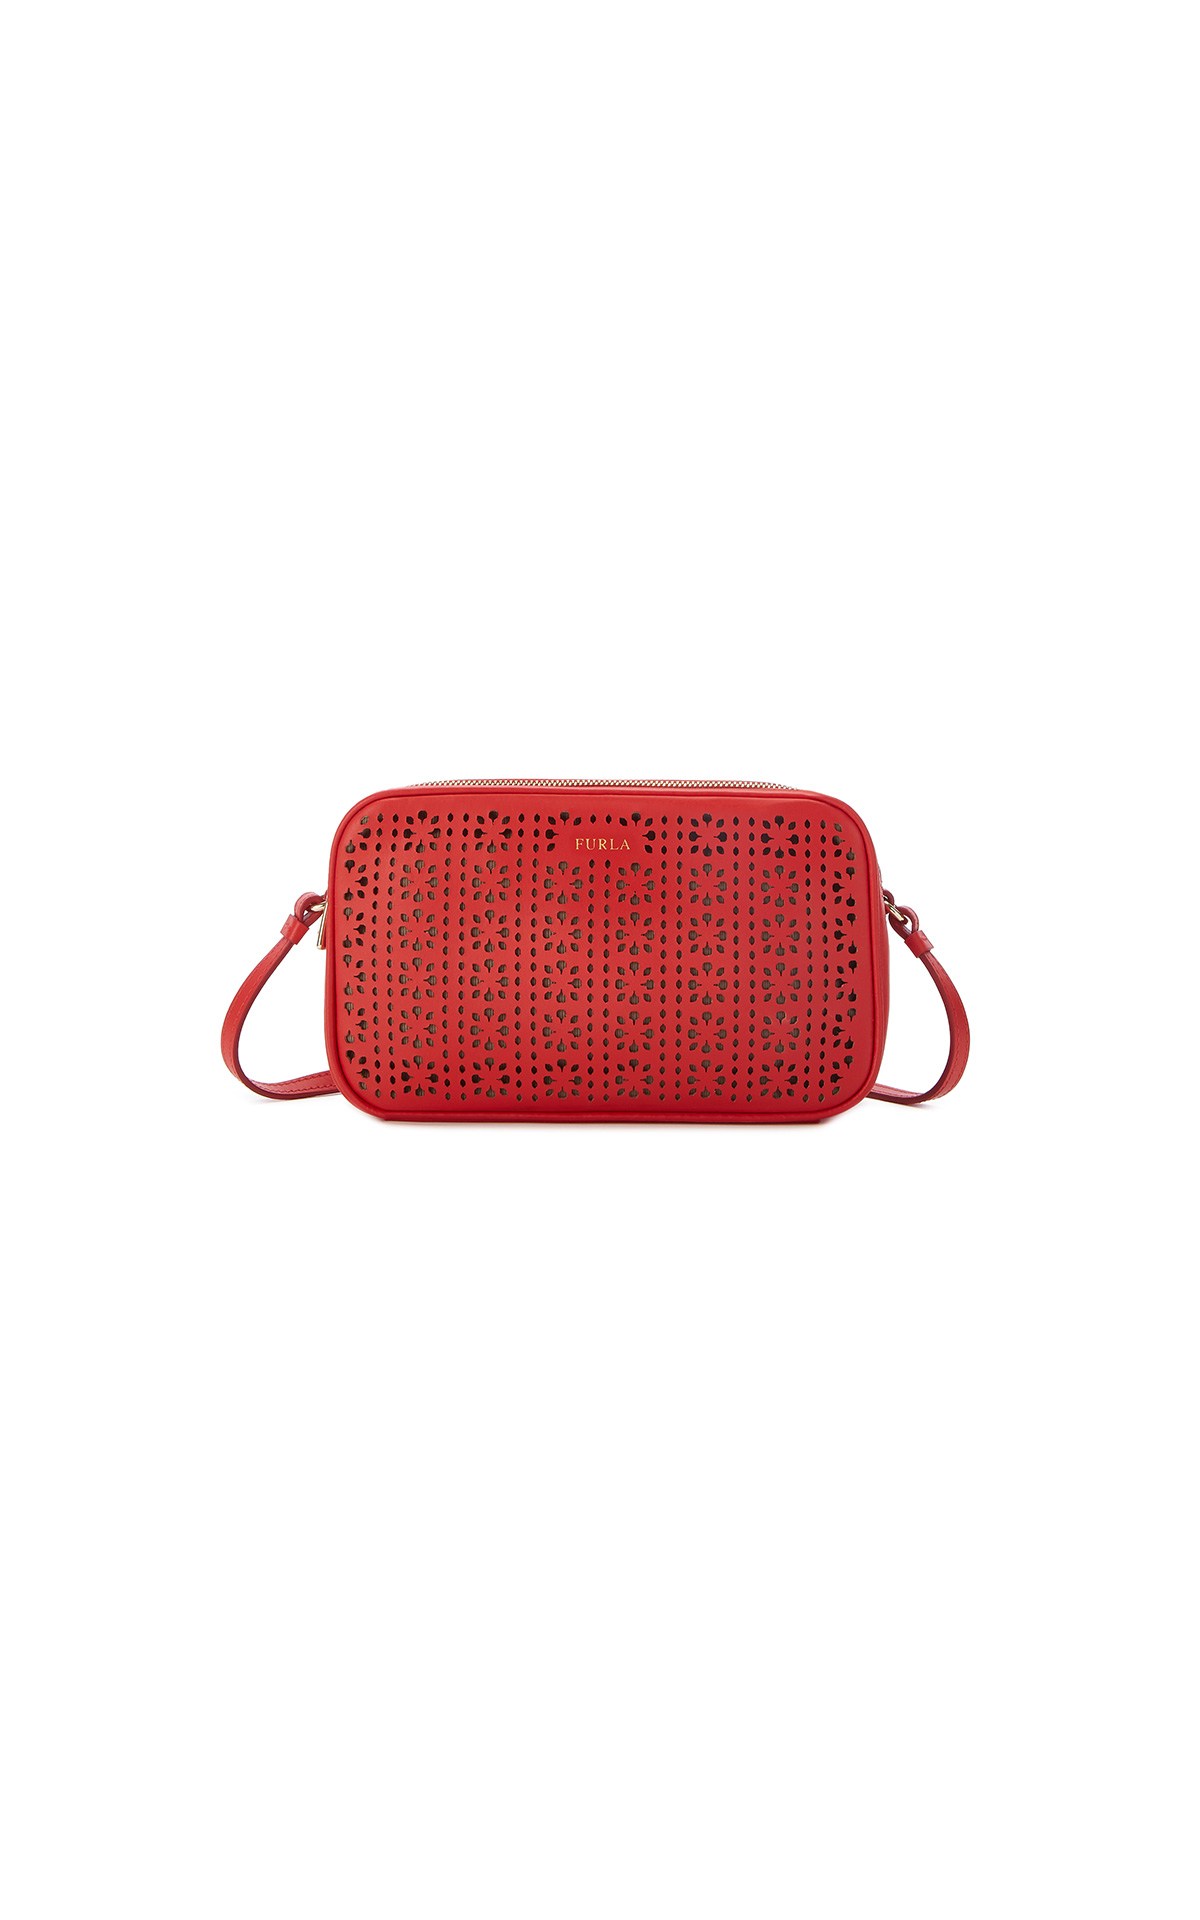 Furla Lilli XL Crossbody pouch in red at The Bicester Village Shoppnig Collection